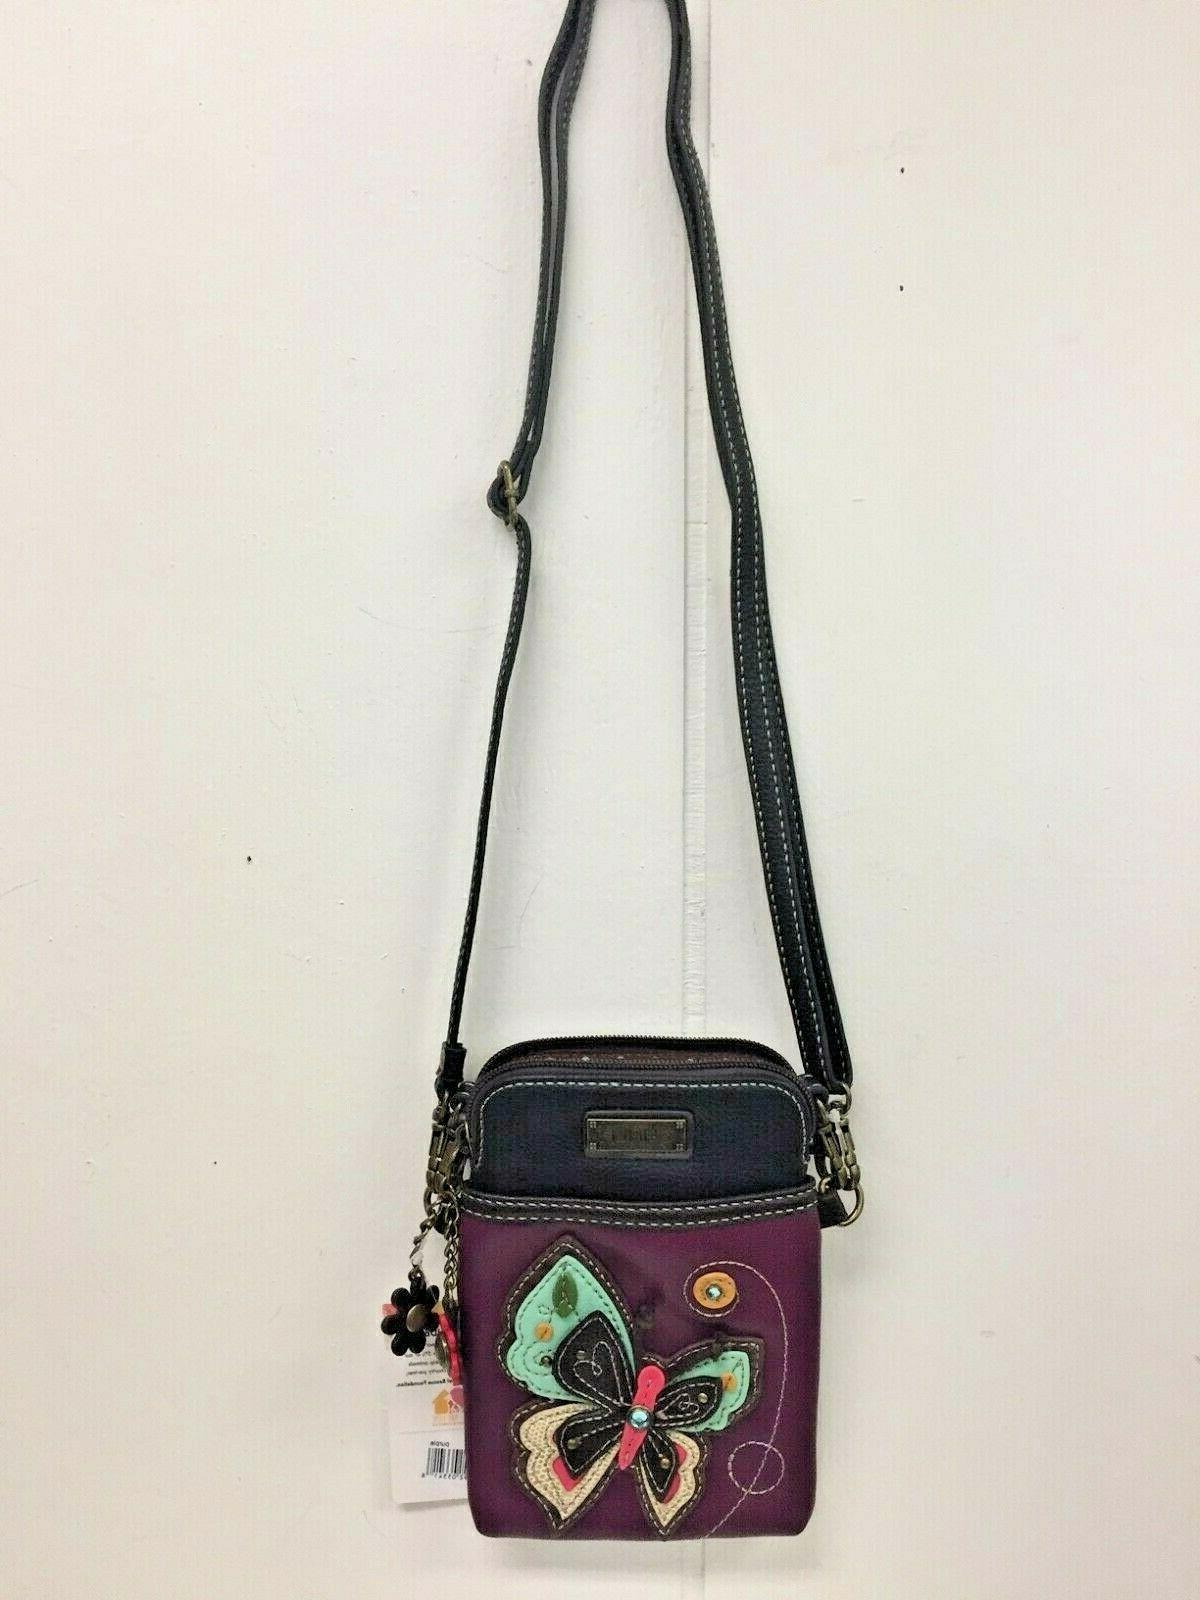 Phone Crossbody Bag Small Convertible Purse New